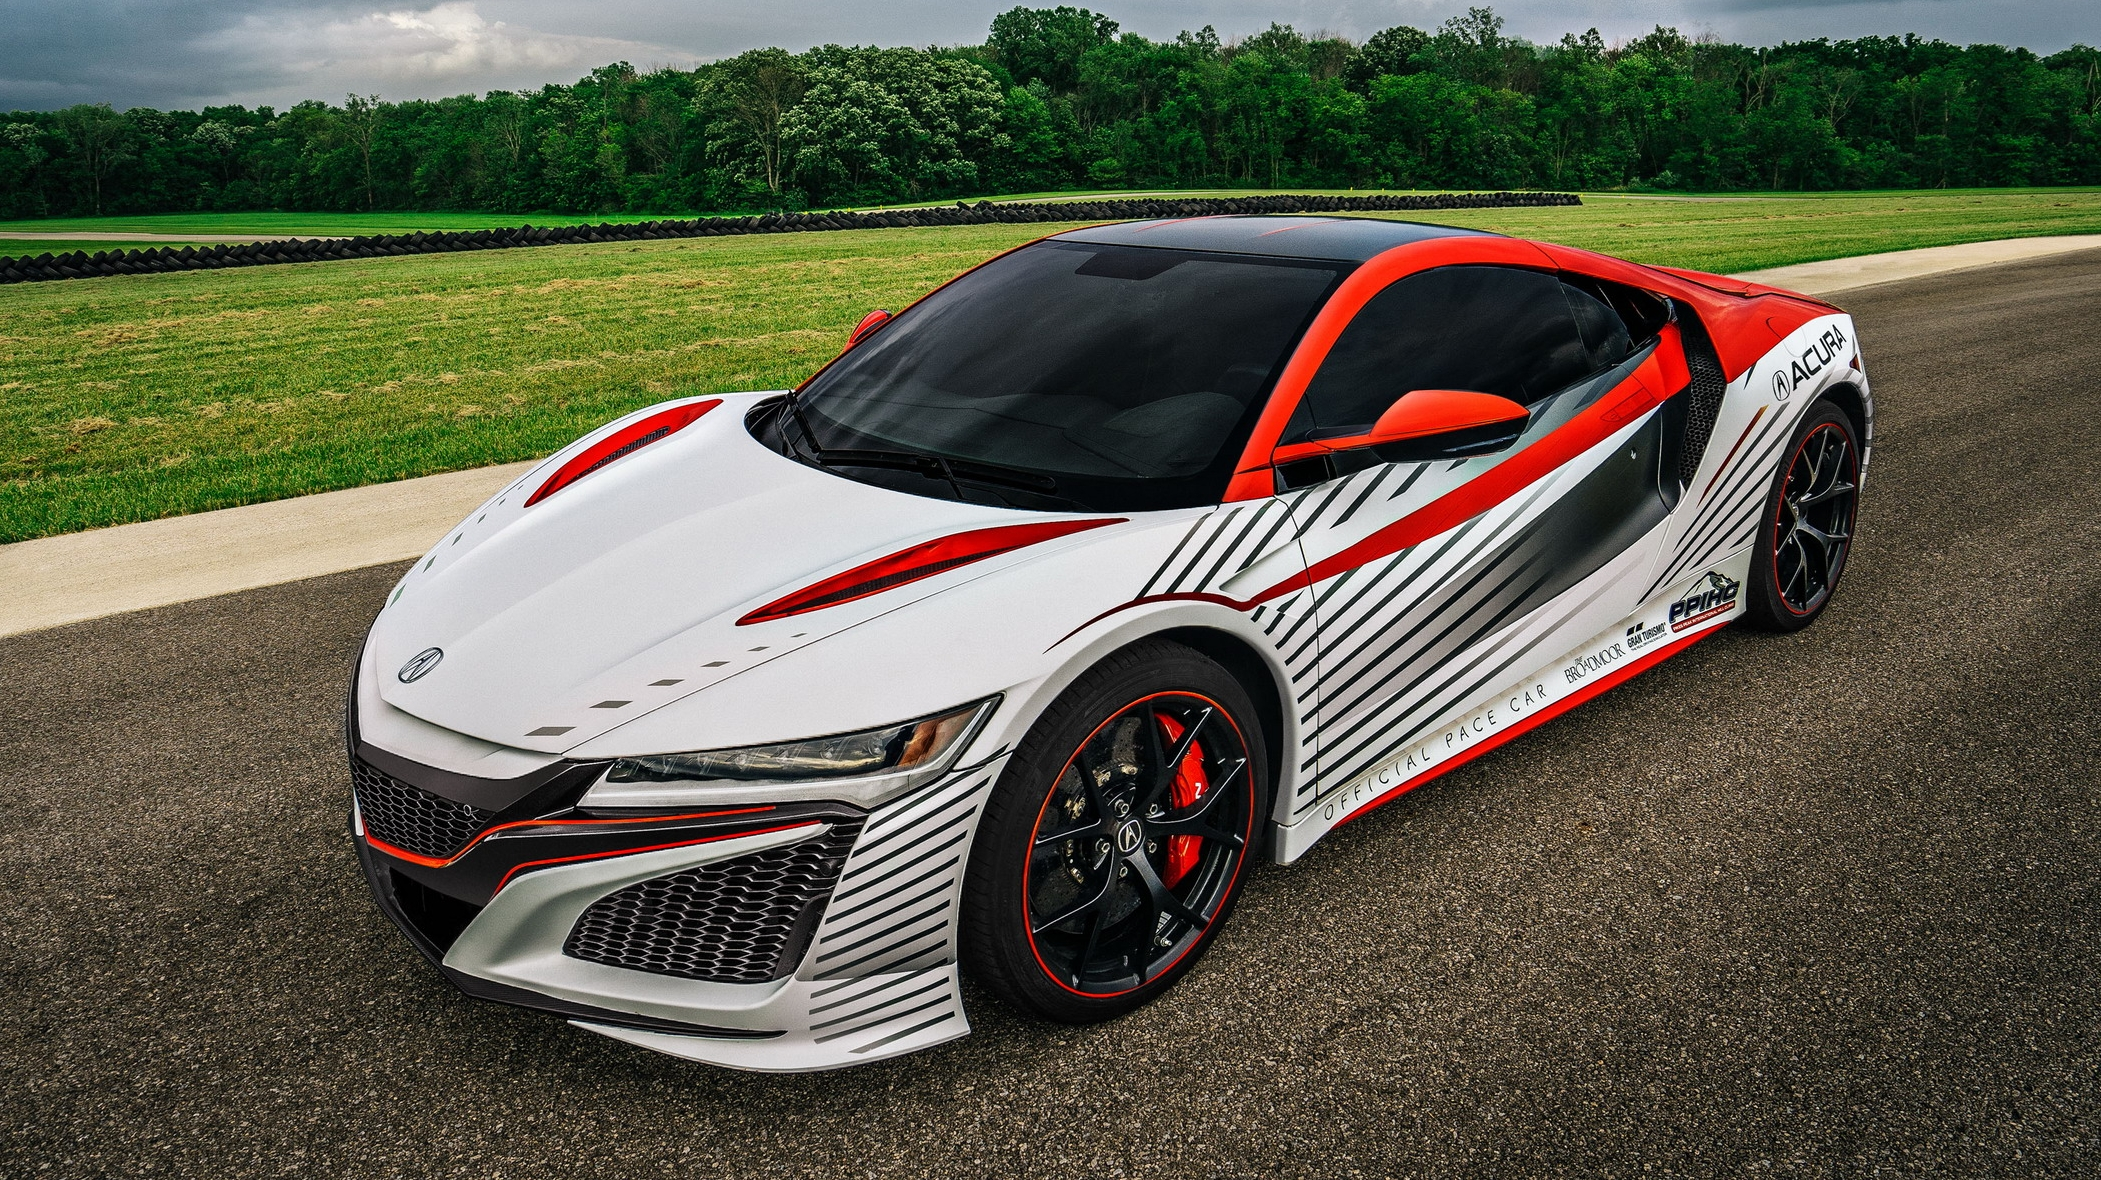 2017 Acura NSX GT Car Picture. | Top Speed